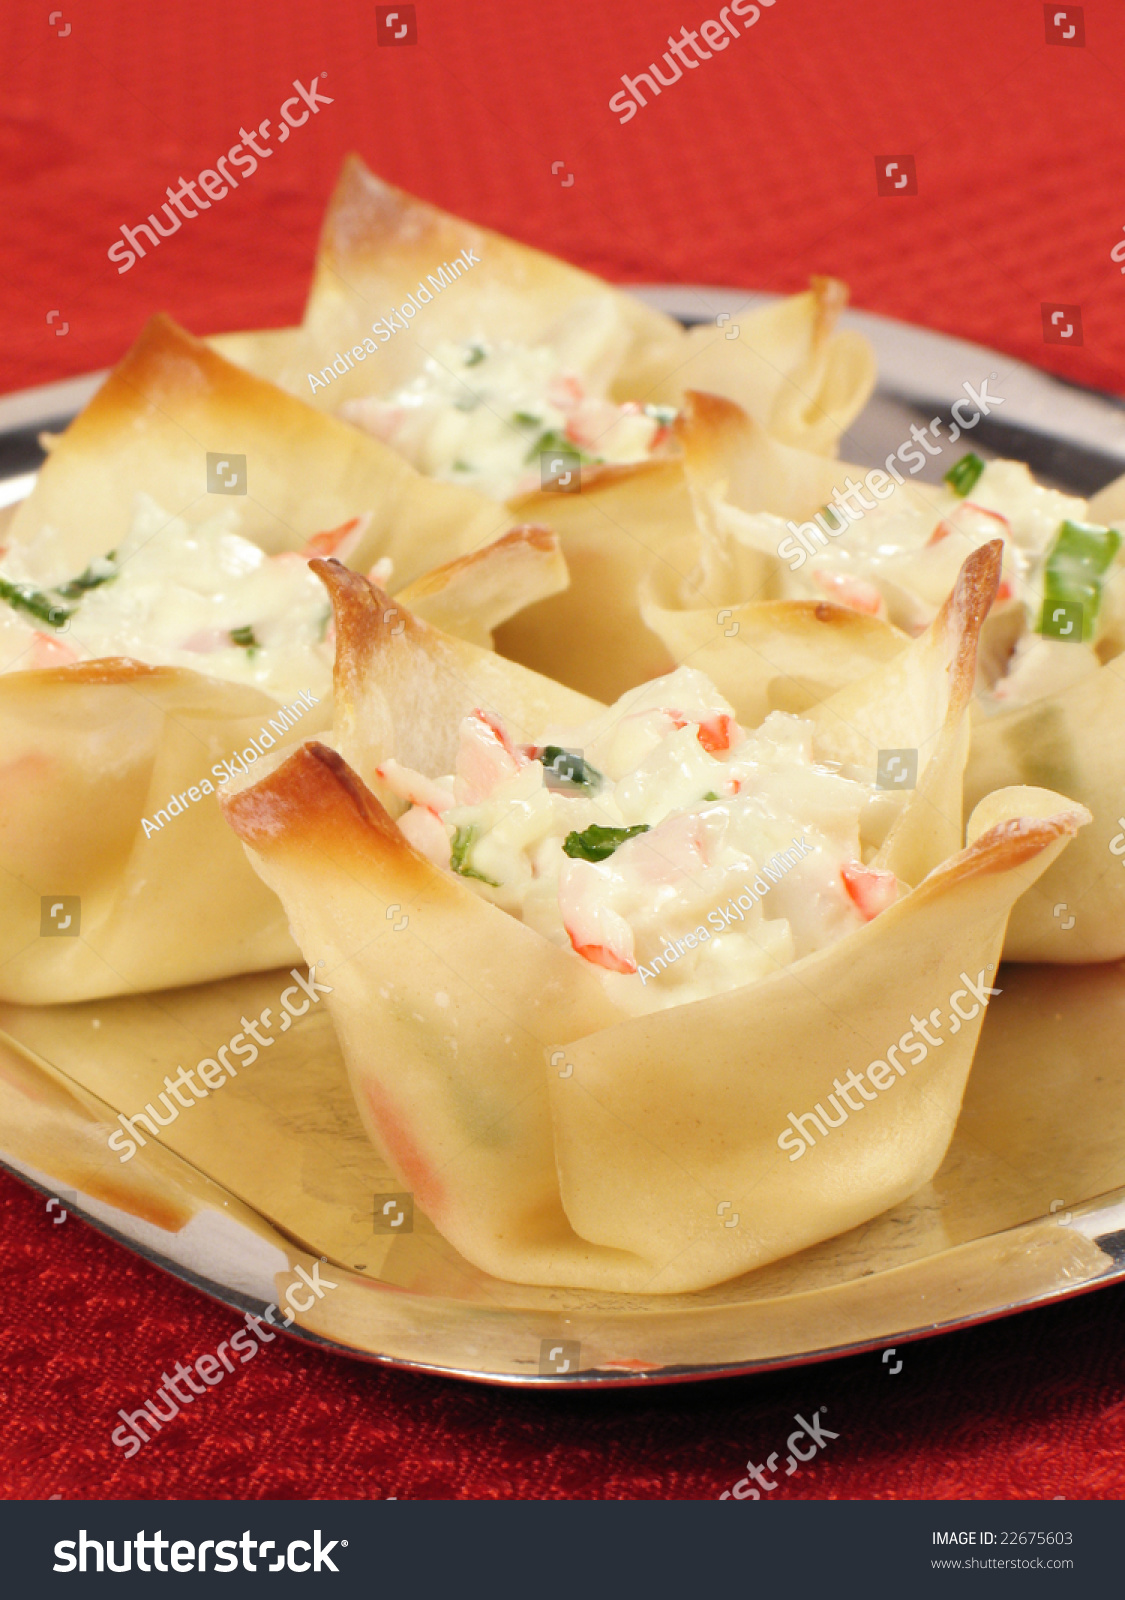 Baked wonton wrappers filled with crab meat, cream cheese, and green ...